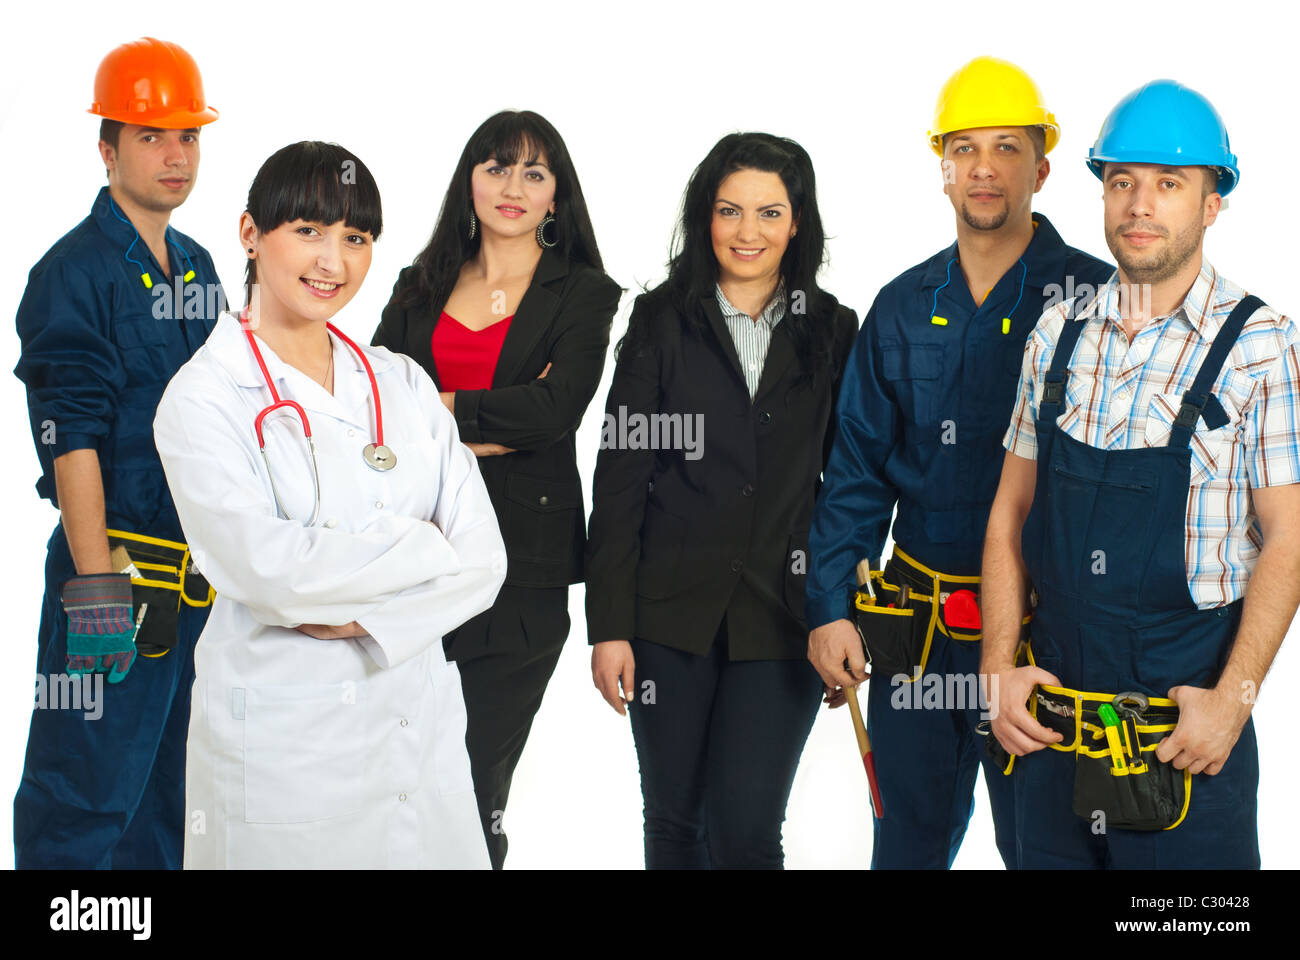 Doctor woman standing with hands crossed in front of workers with different careers isolated on white background - Stock Image